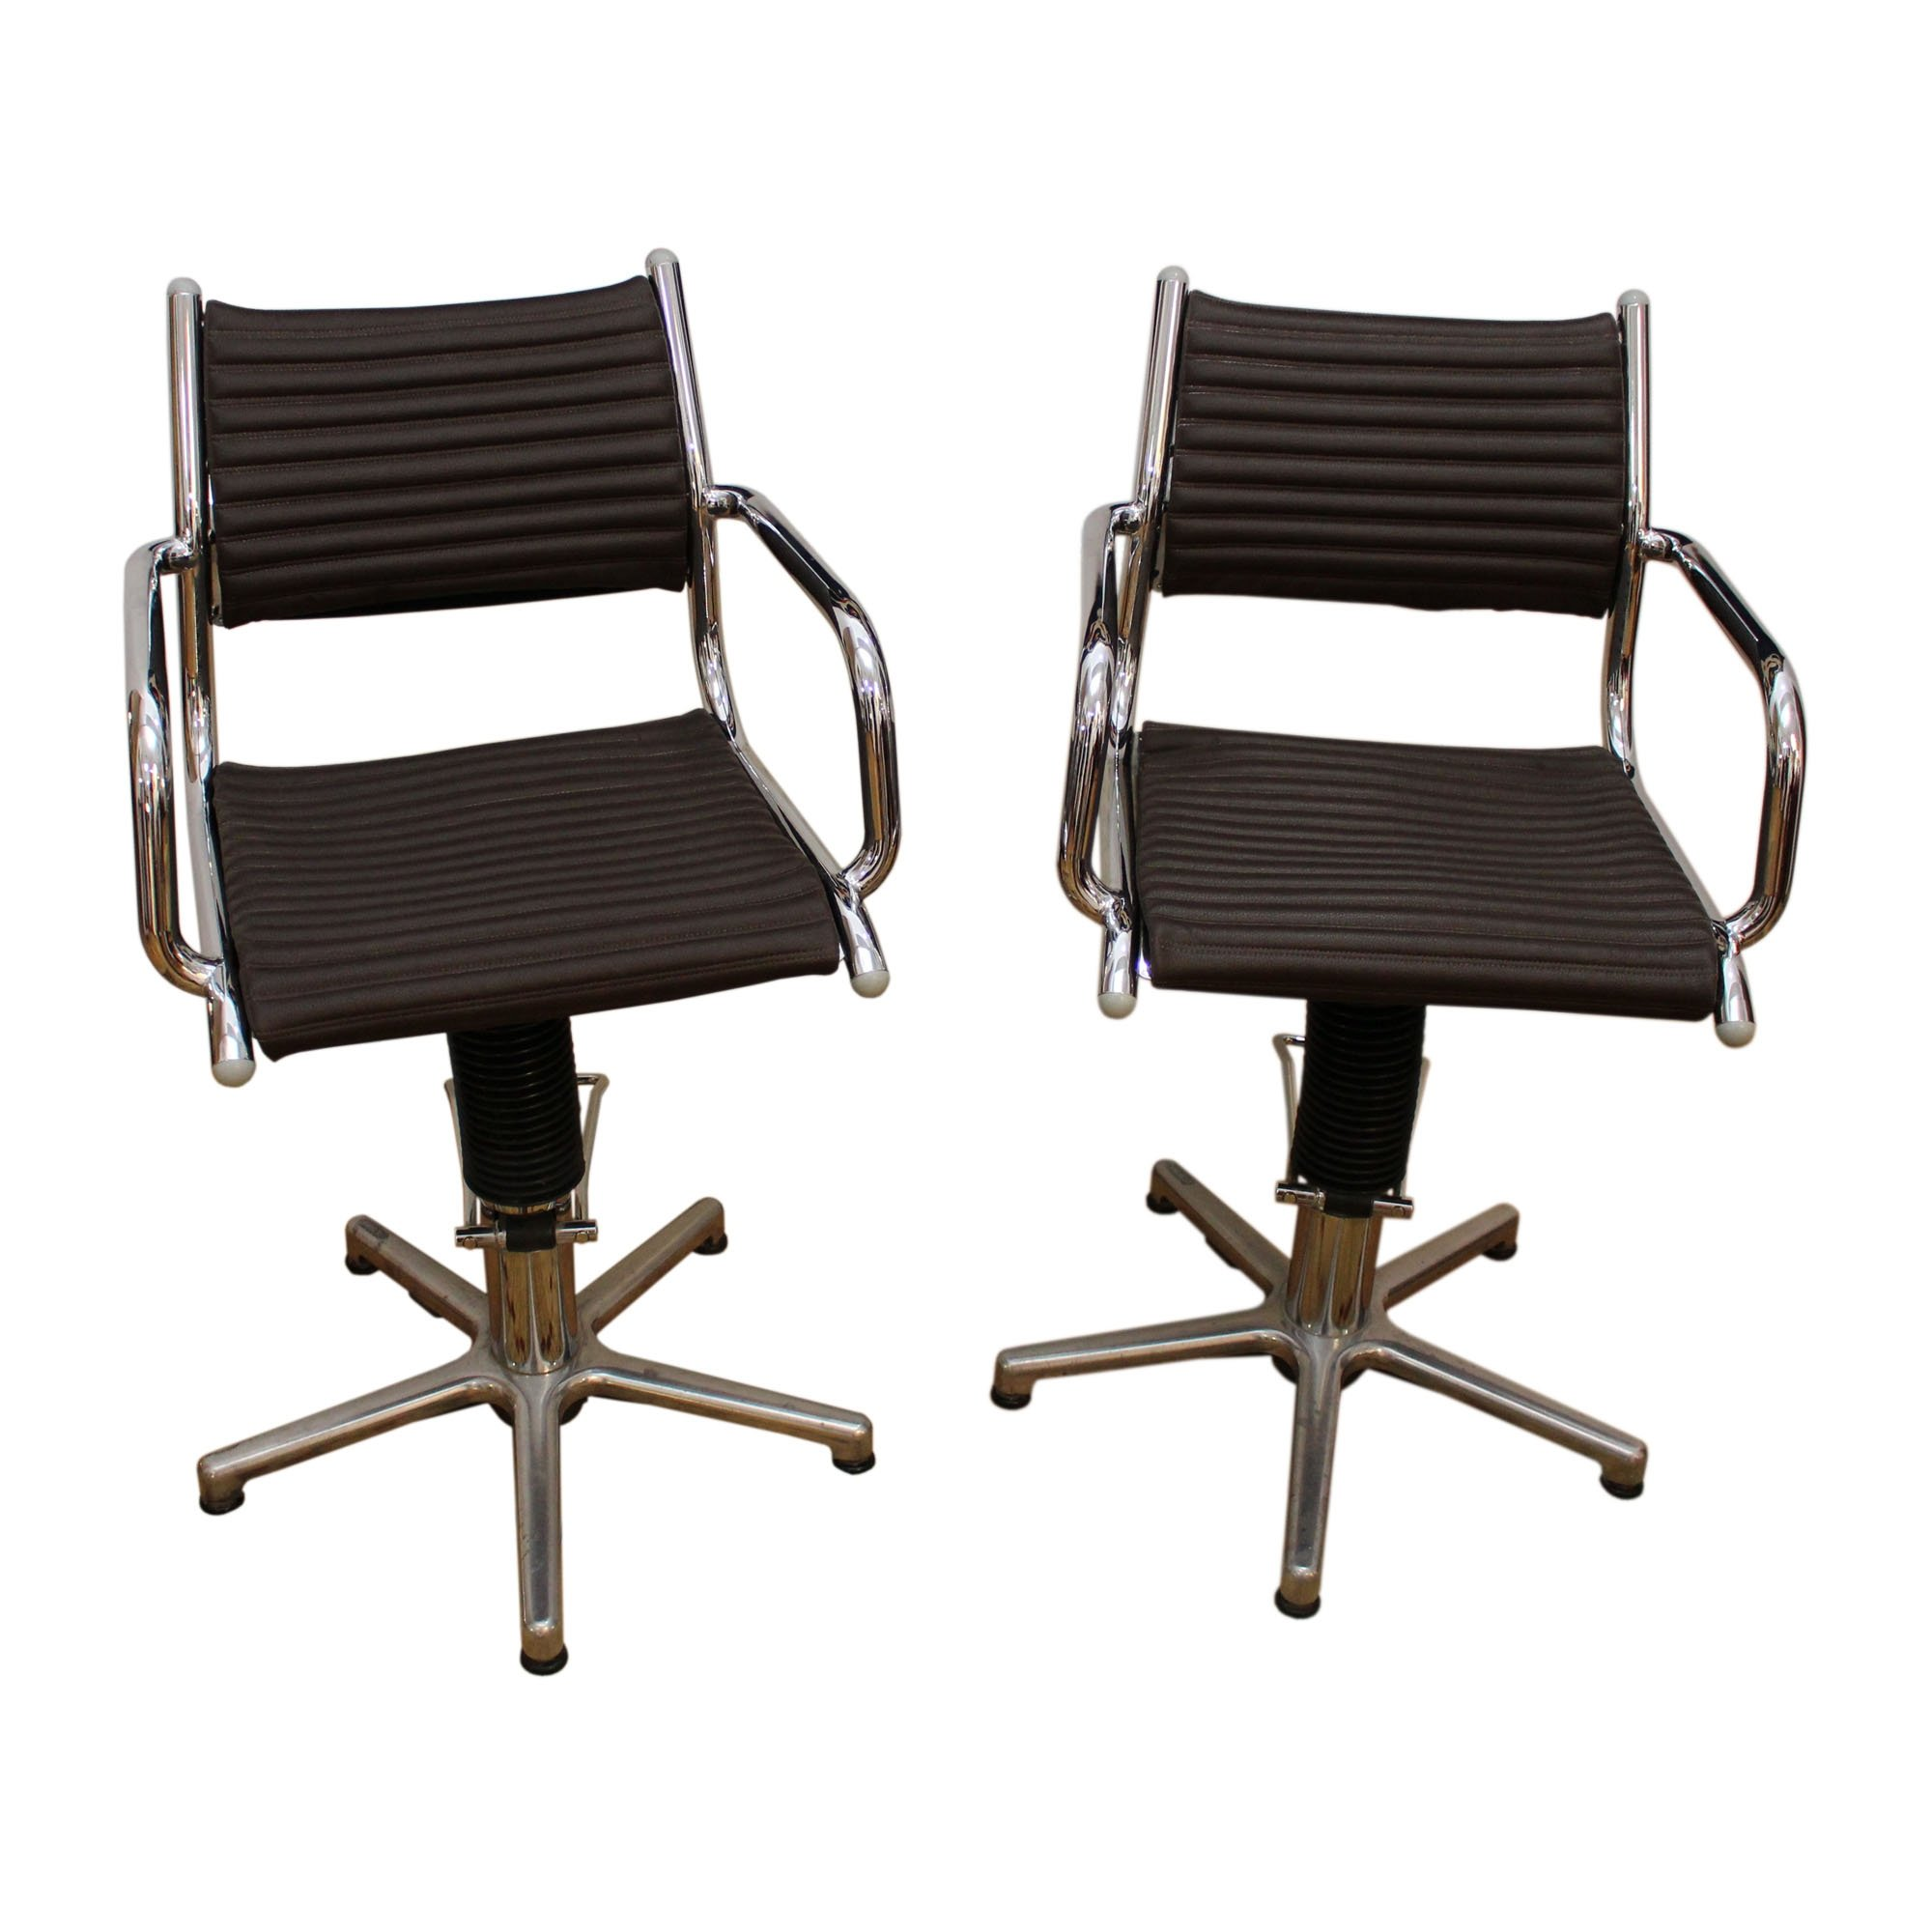 two swivel rotating chairs made in germany by olymp in the 1970s 71153. Black Bedroom Furniture Sets. Home Design Ideas